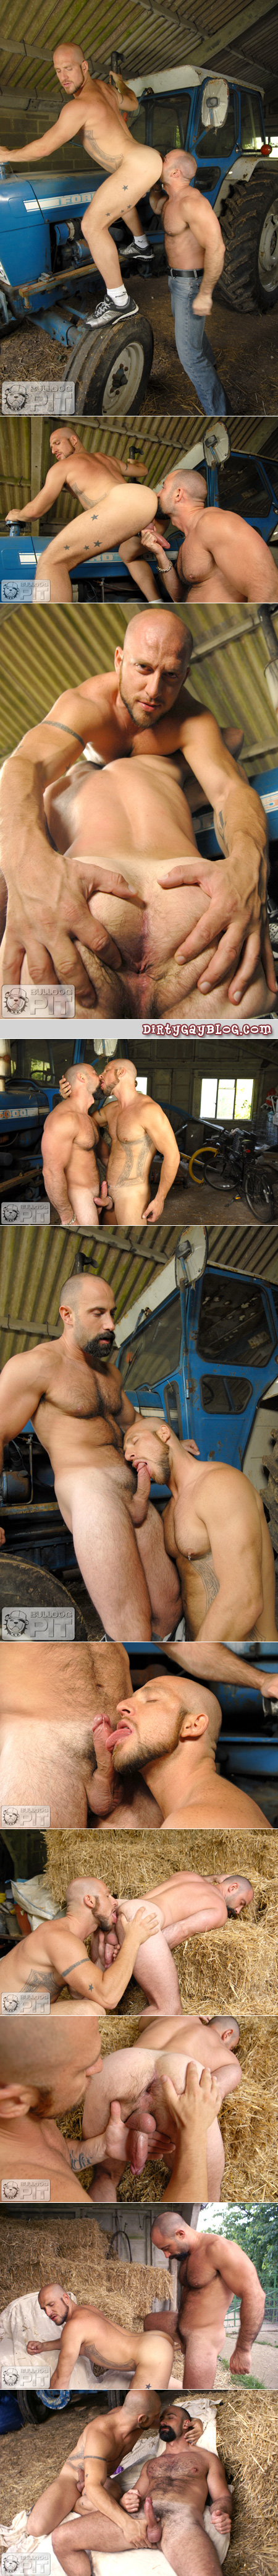 Butch, hairy Spanish men flip-fuck loudly in the barn.